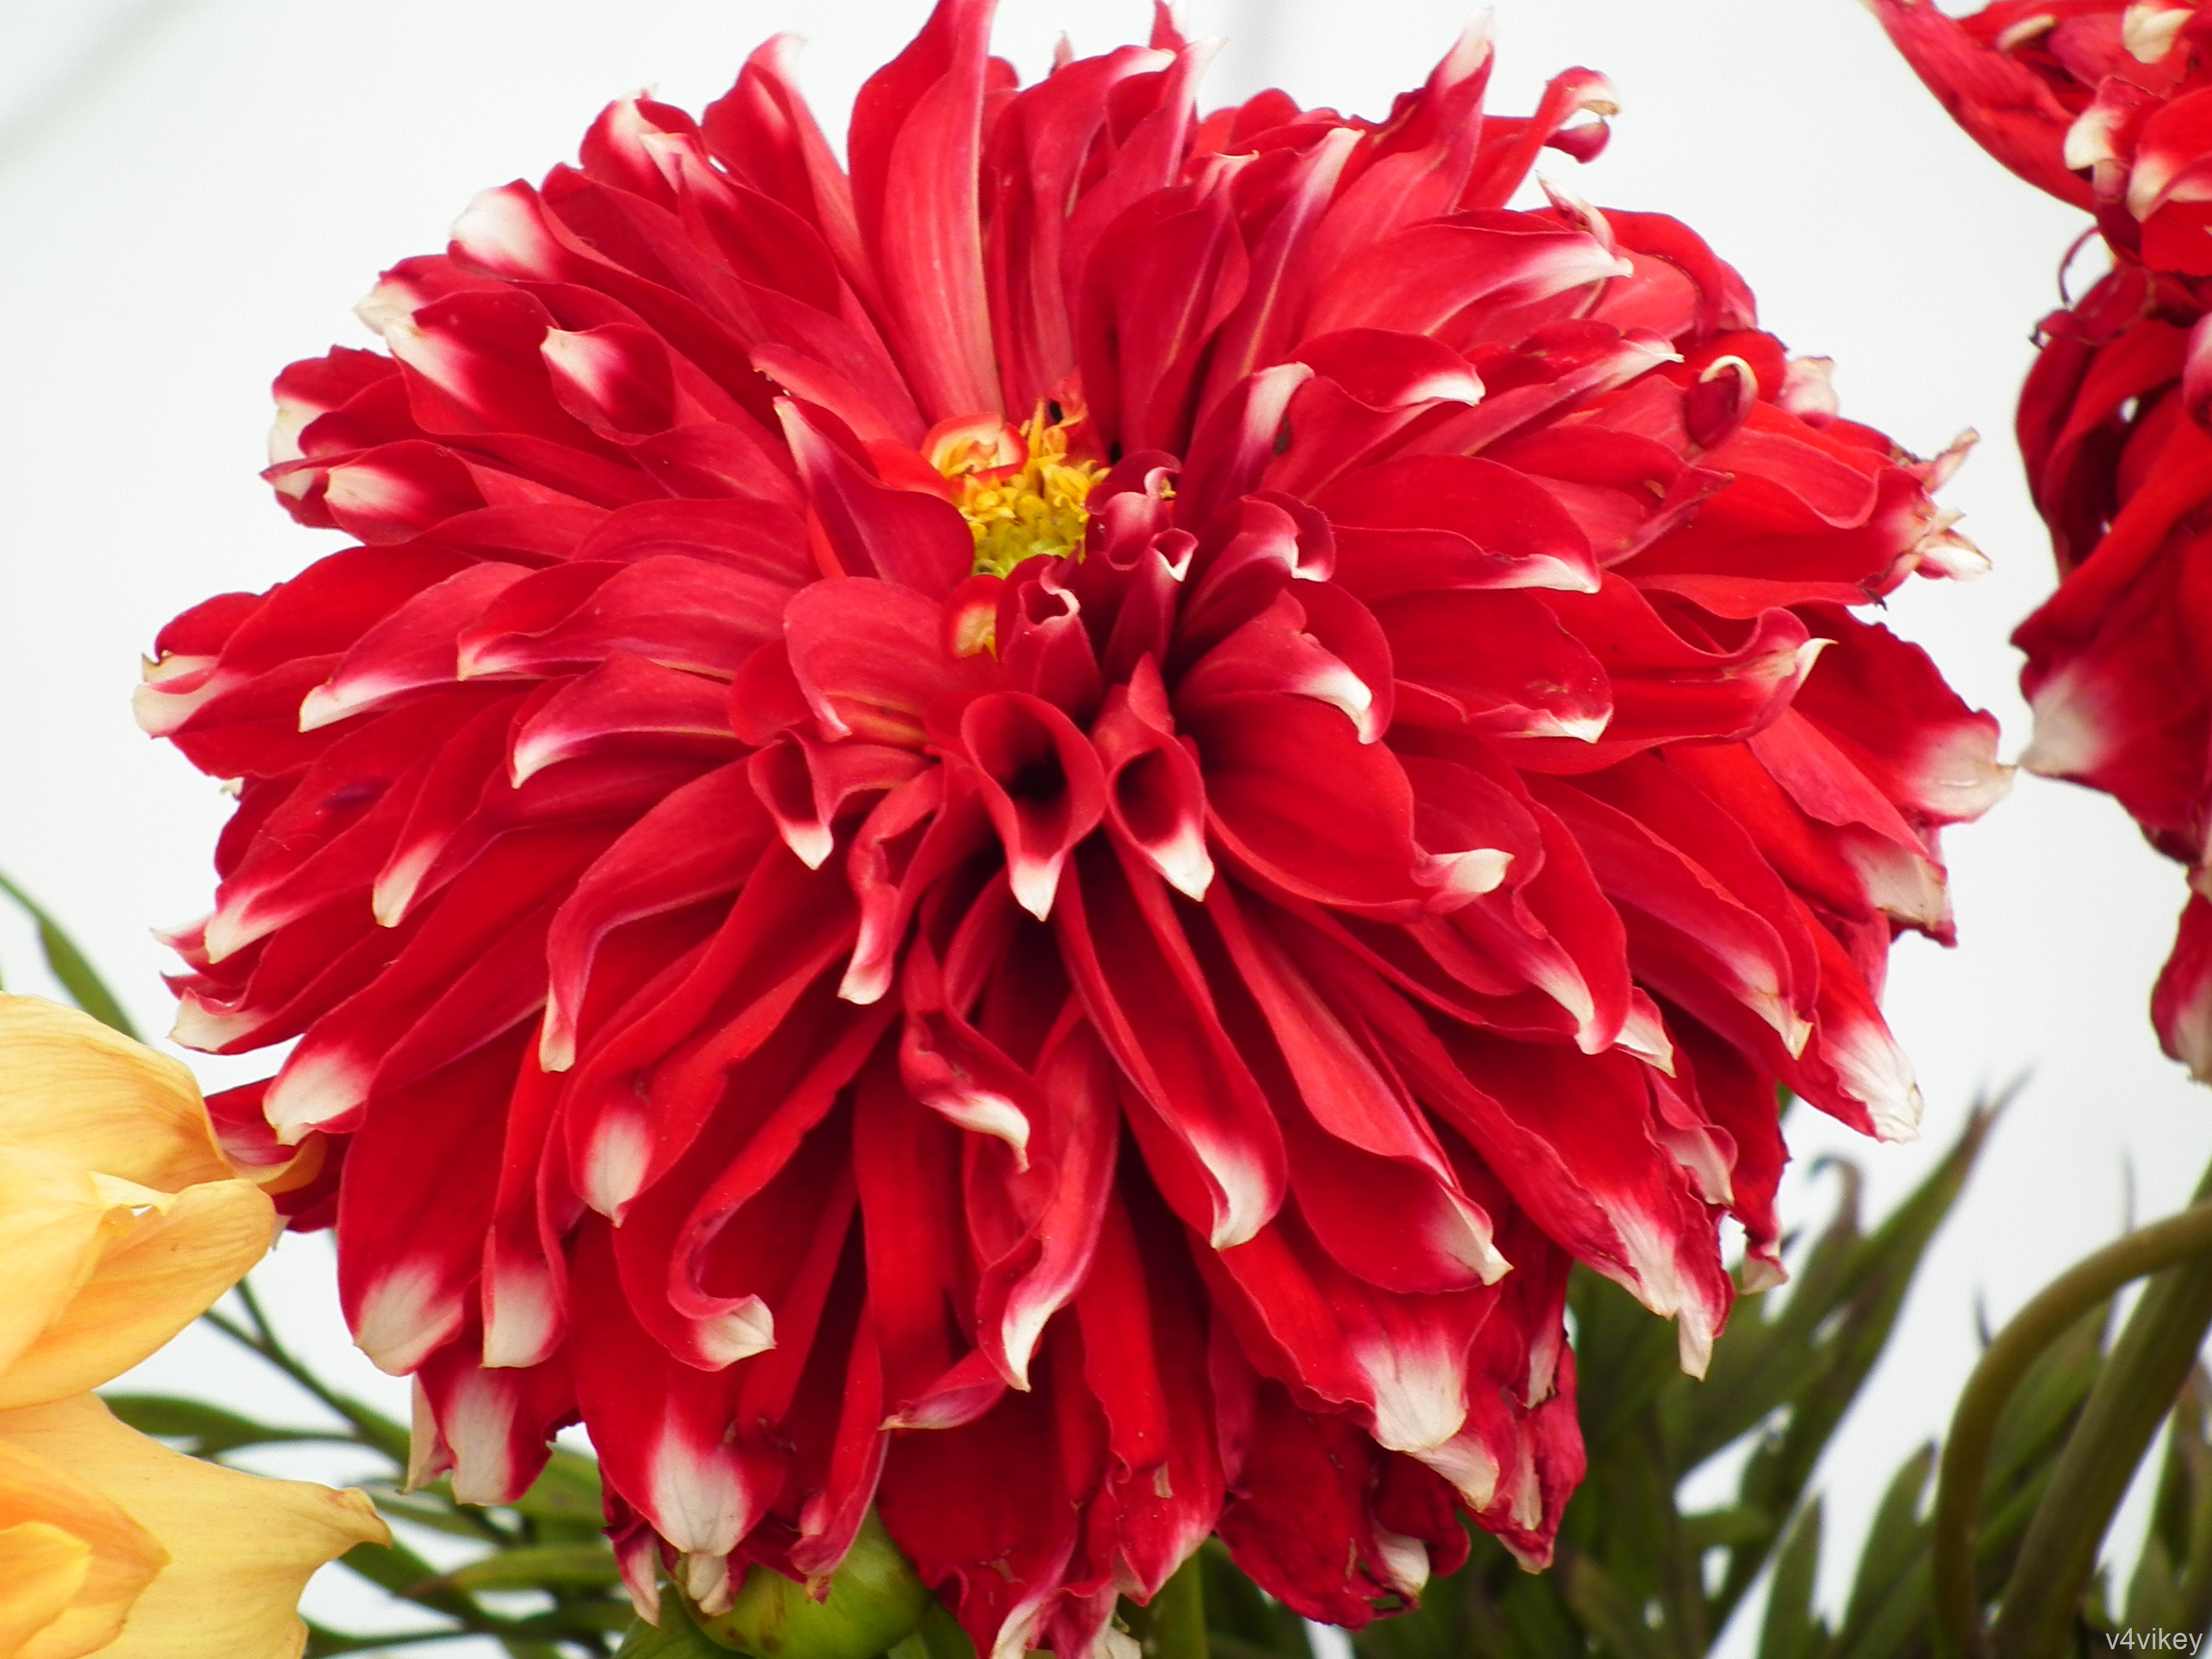 Red Checker Big Dahlia Flower Is One Of The Most Consistent Blooming